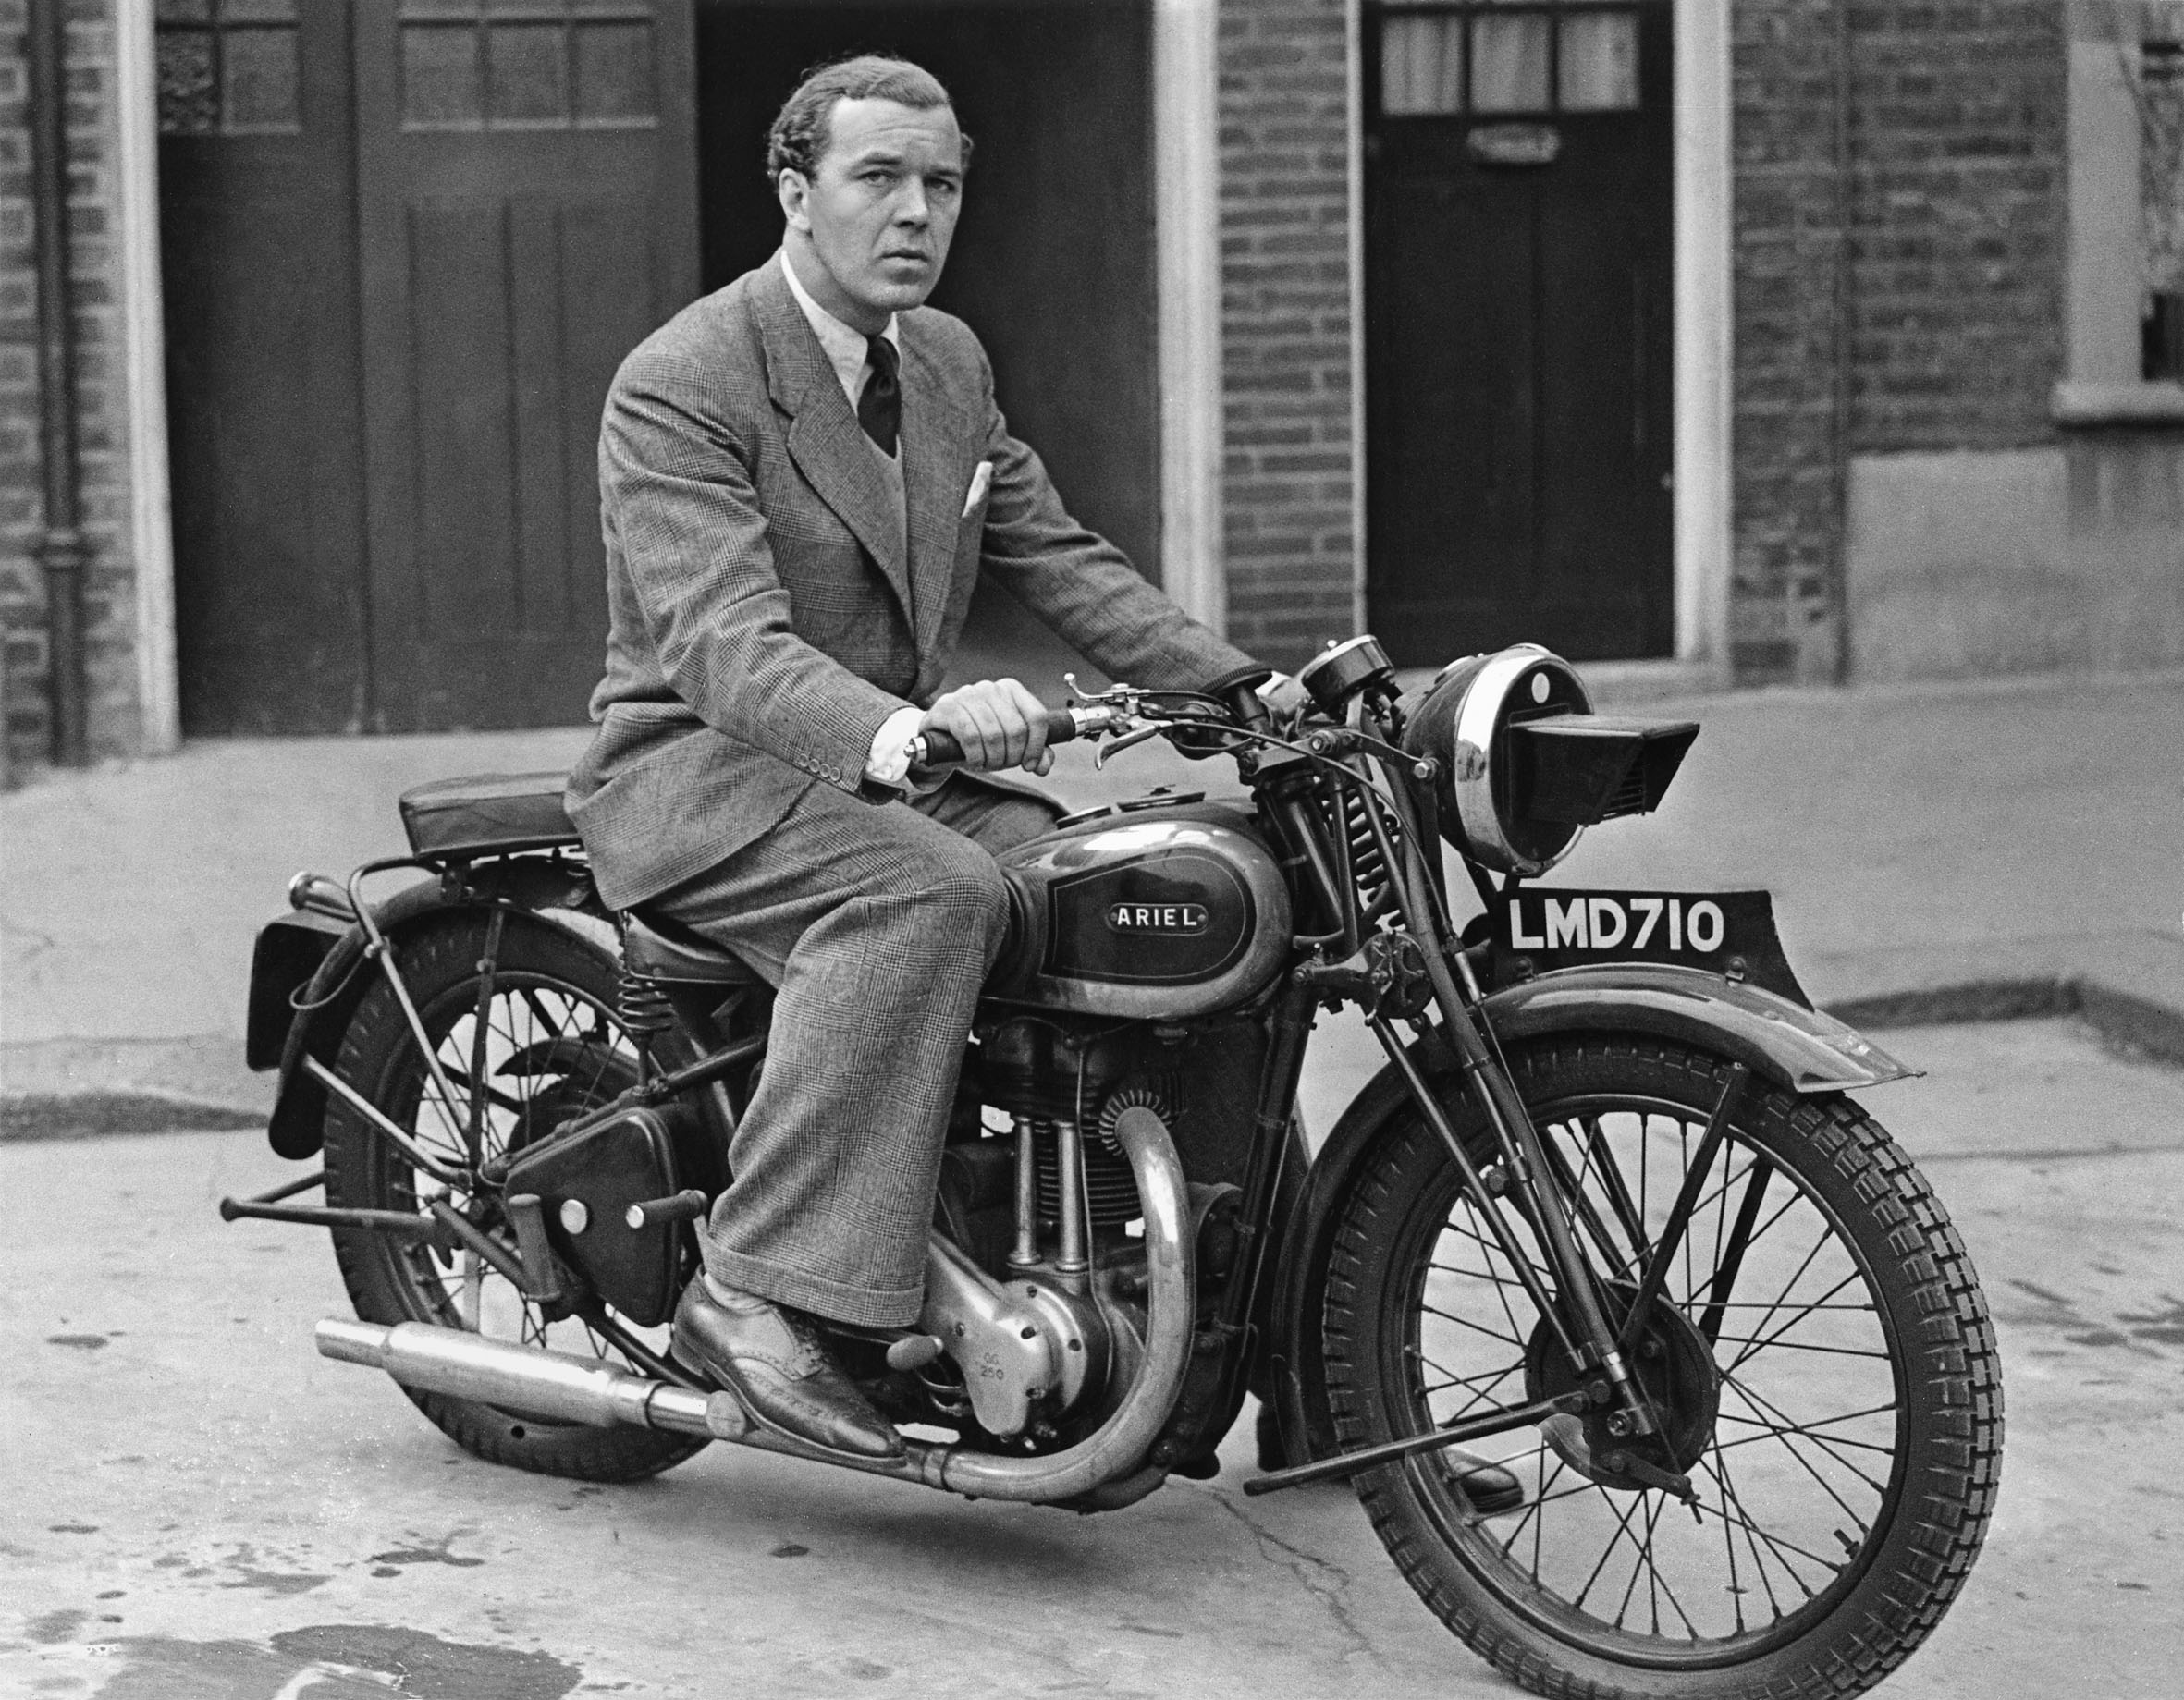 File:Prince Bertil-motorcycle London 1943.jpg